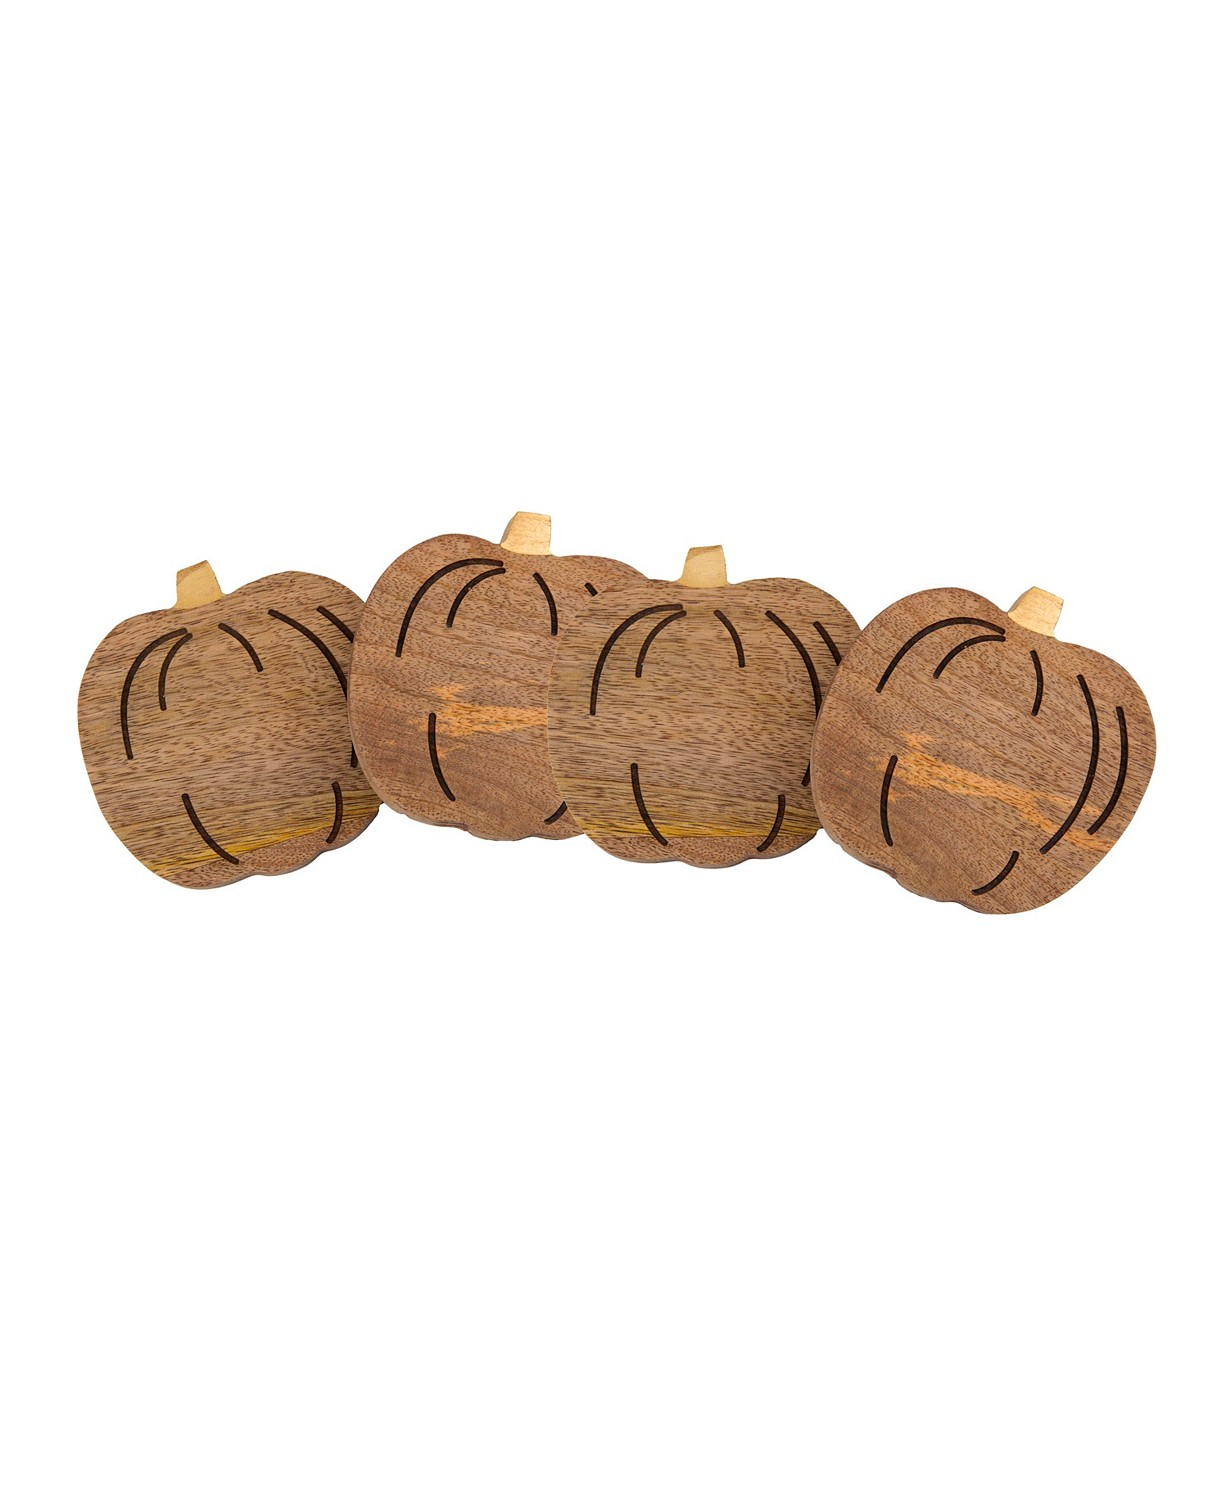 Thirstystone Pumpkin Wood Coasters, Set of 4